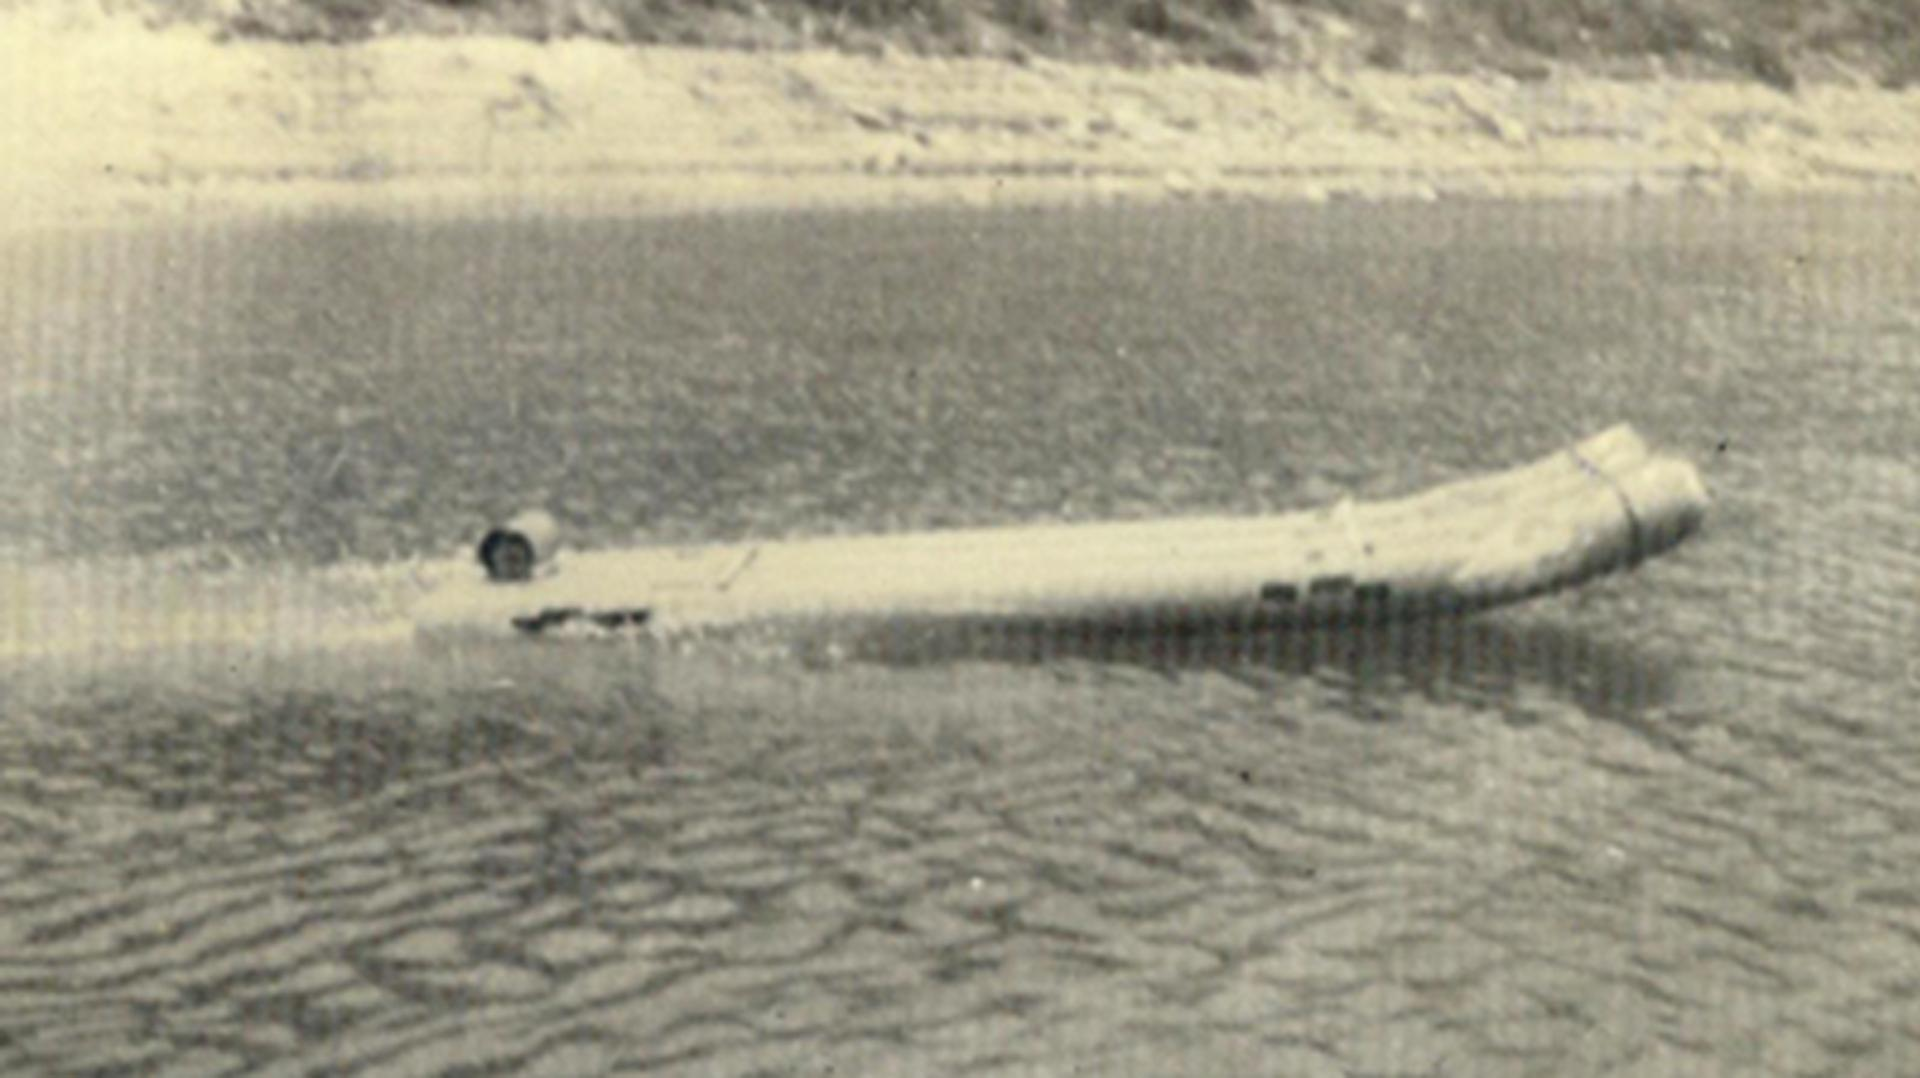 A scale model of the Tube Boat being tested in a reservoir near the Basses Alpes